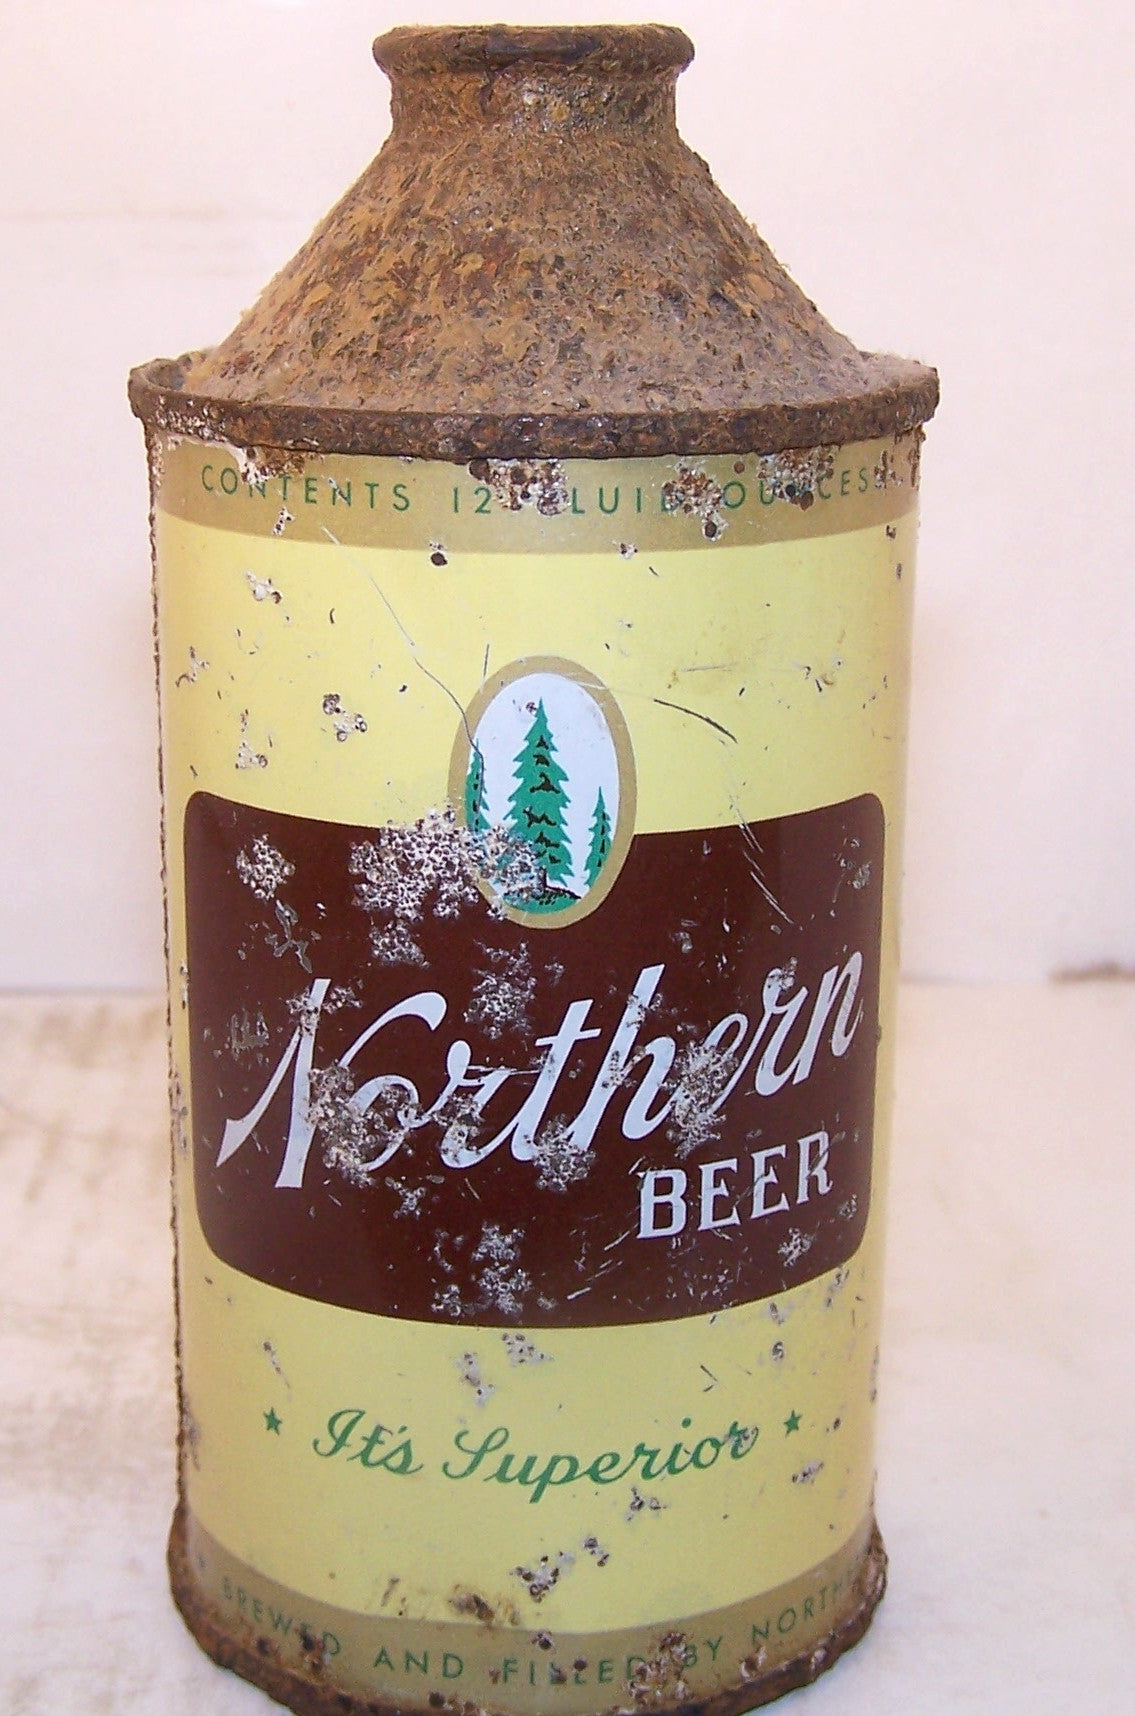 Northern Beer, USBC 175-20 Grade 2-